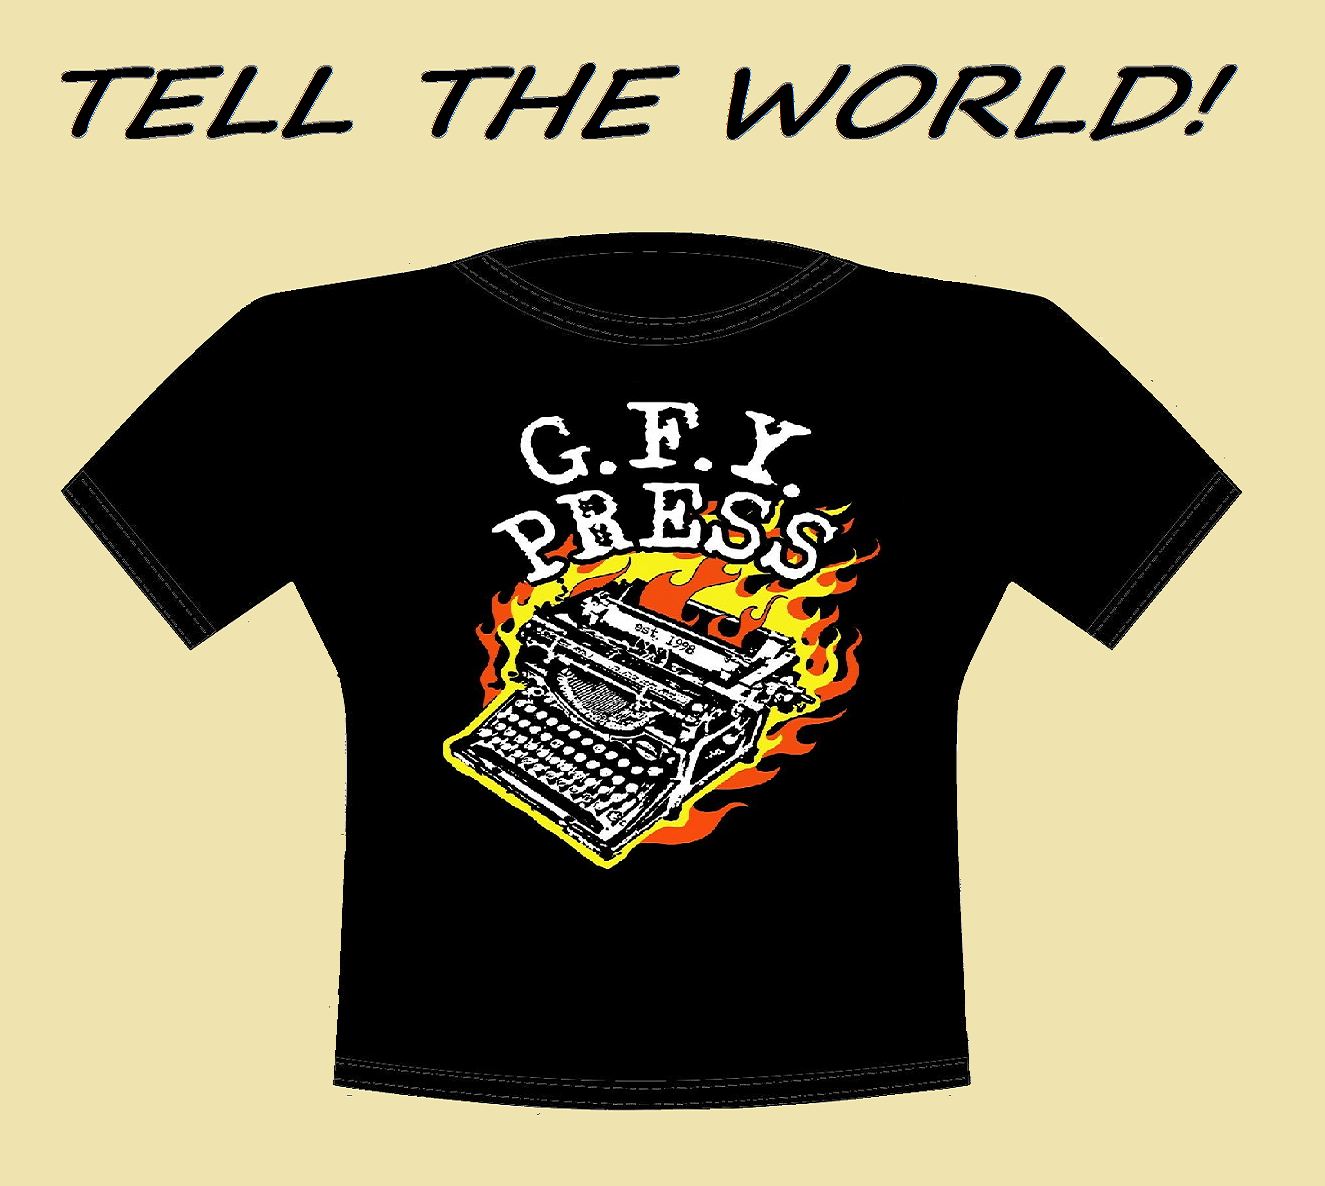 Get Yer Own GFY Press T-Shirt